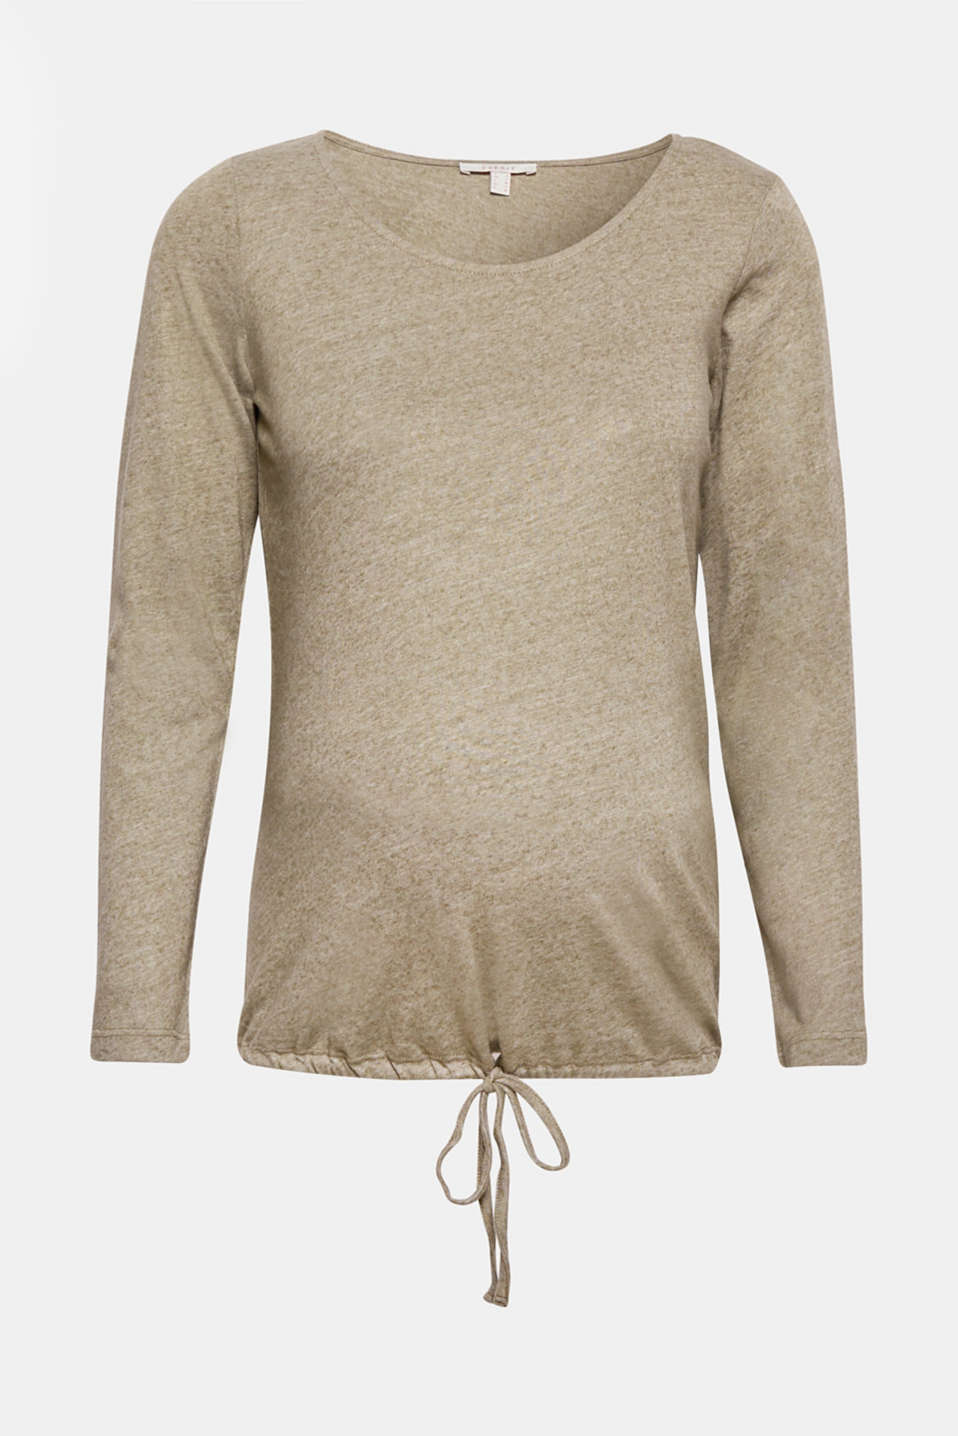 This melange long sleeve top composed of soft jersey is great for relaxing and sleeping! The drawstring hem provides additional comfort.